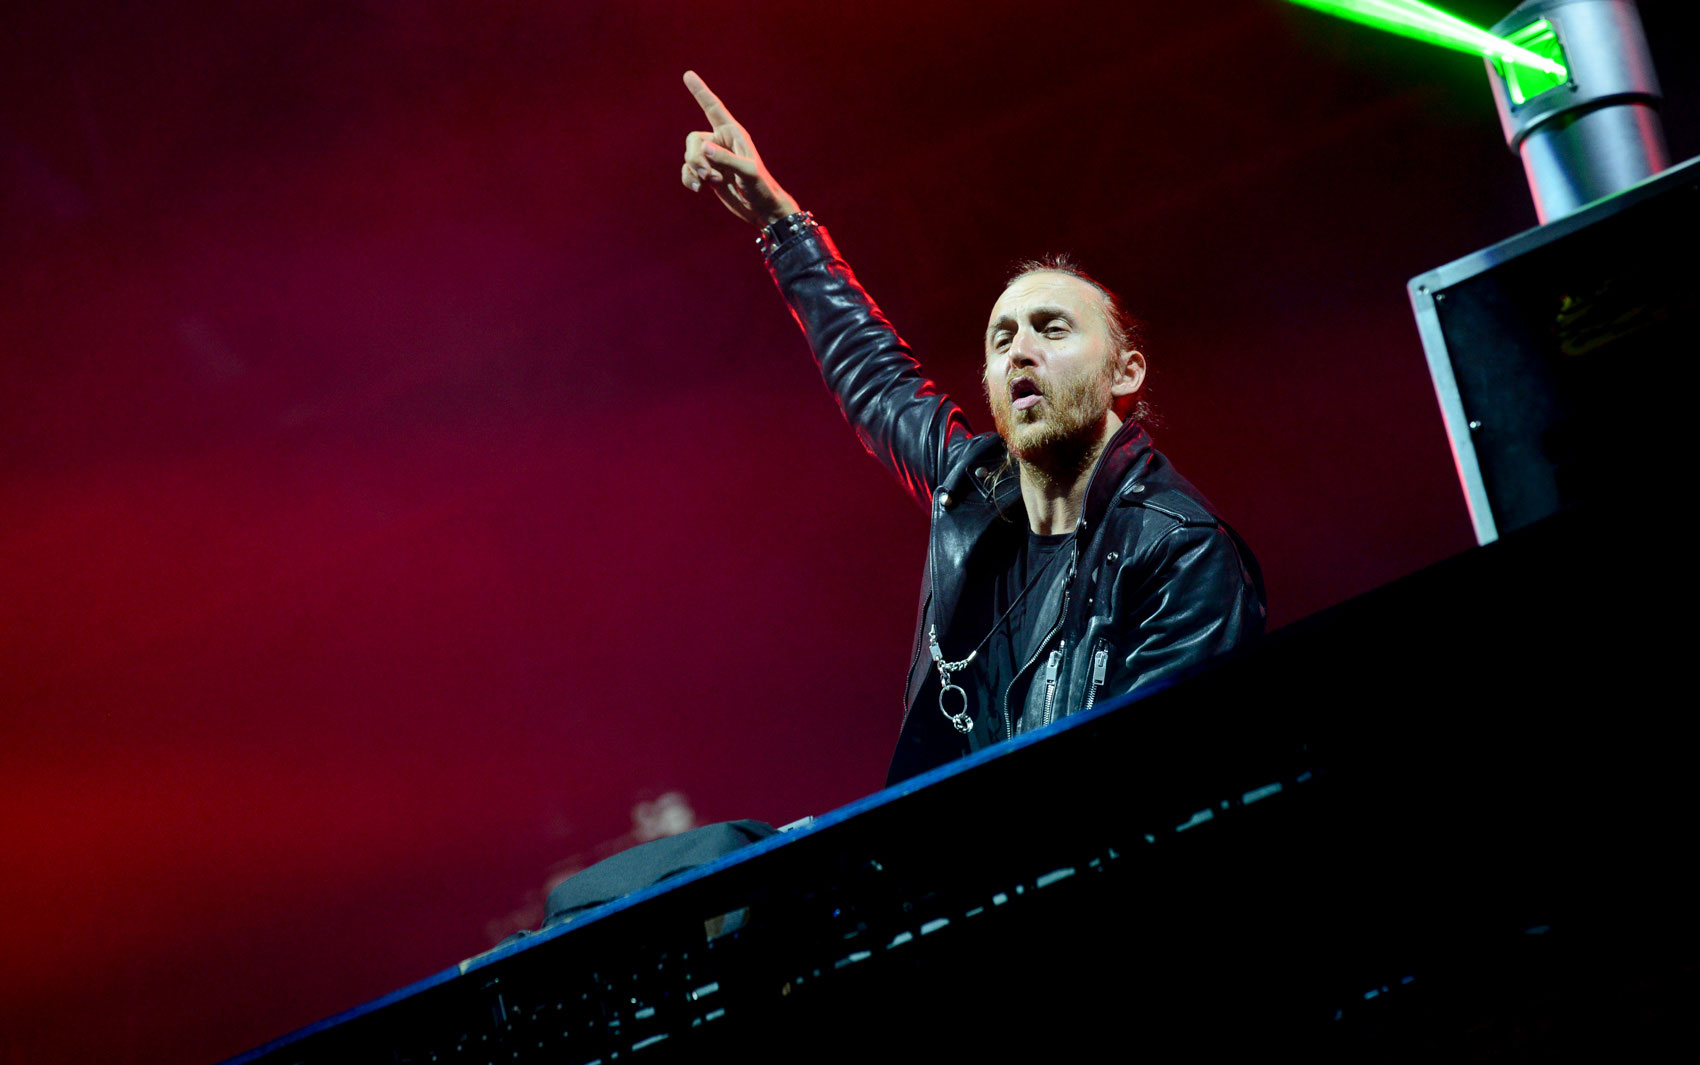 David Guetta discoteca no Palco Mundo do Rock in Rio 2013